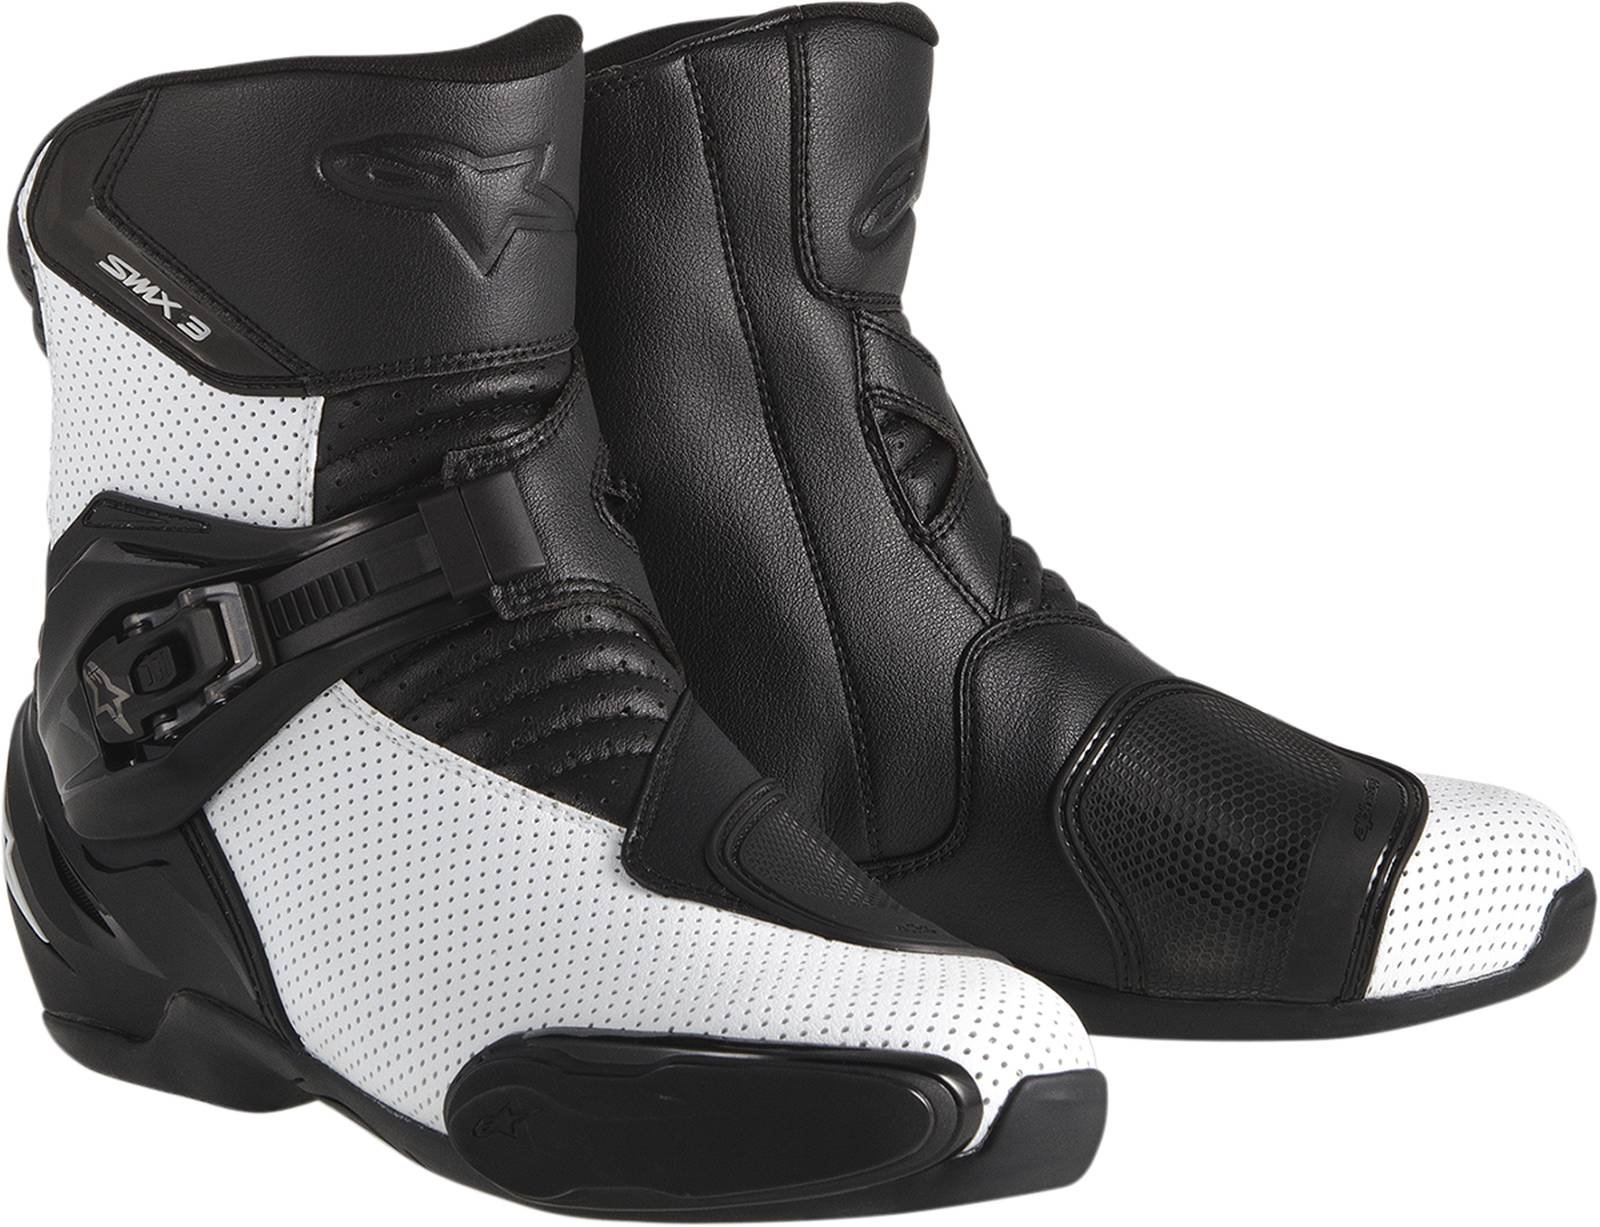 Alpinestars SMX 3 SportBike Motorcycle Boots CE Certified White Vented Euro 42 US Size 8 by Alpinestars